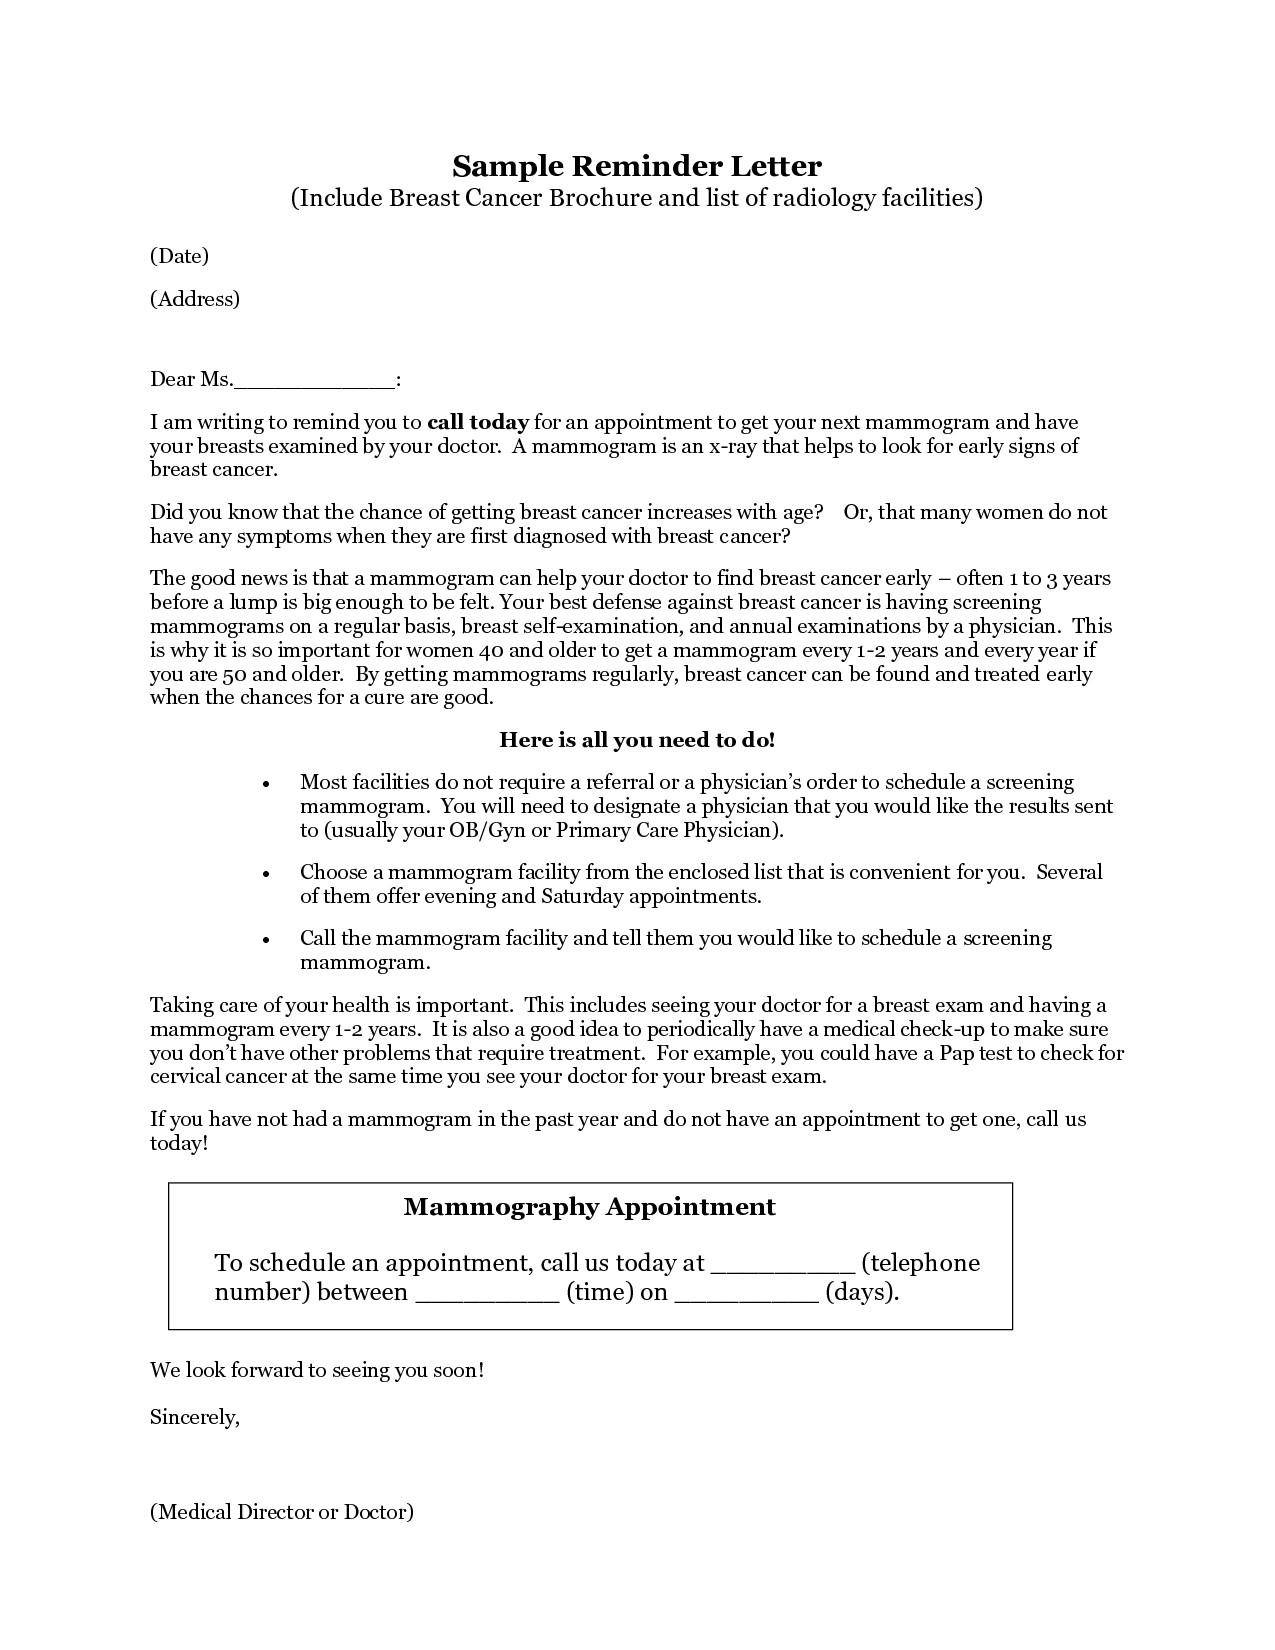 Sample Doctor Referral Letter Template - How to Write A Referral Letter to A Doctor Image Collections